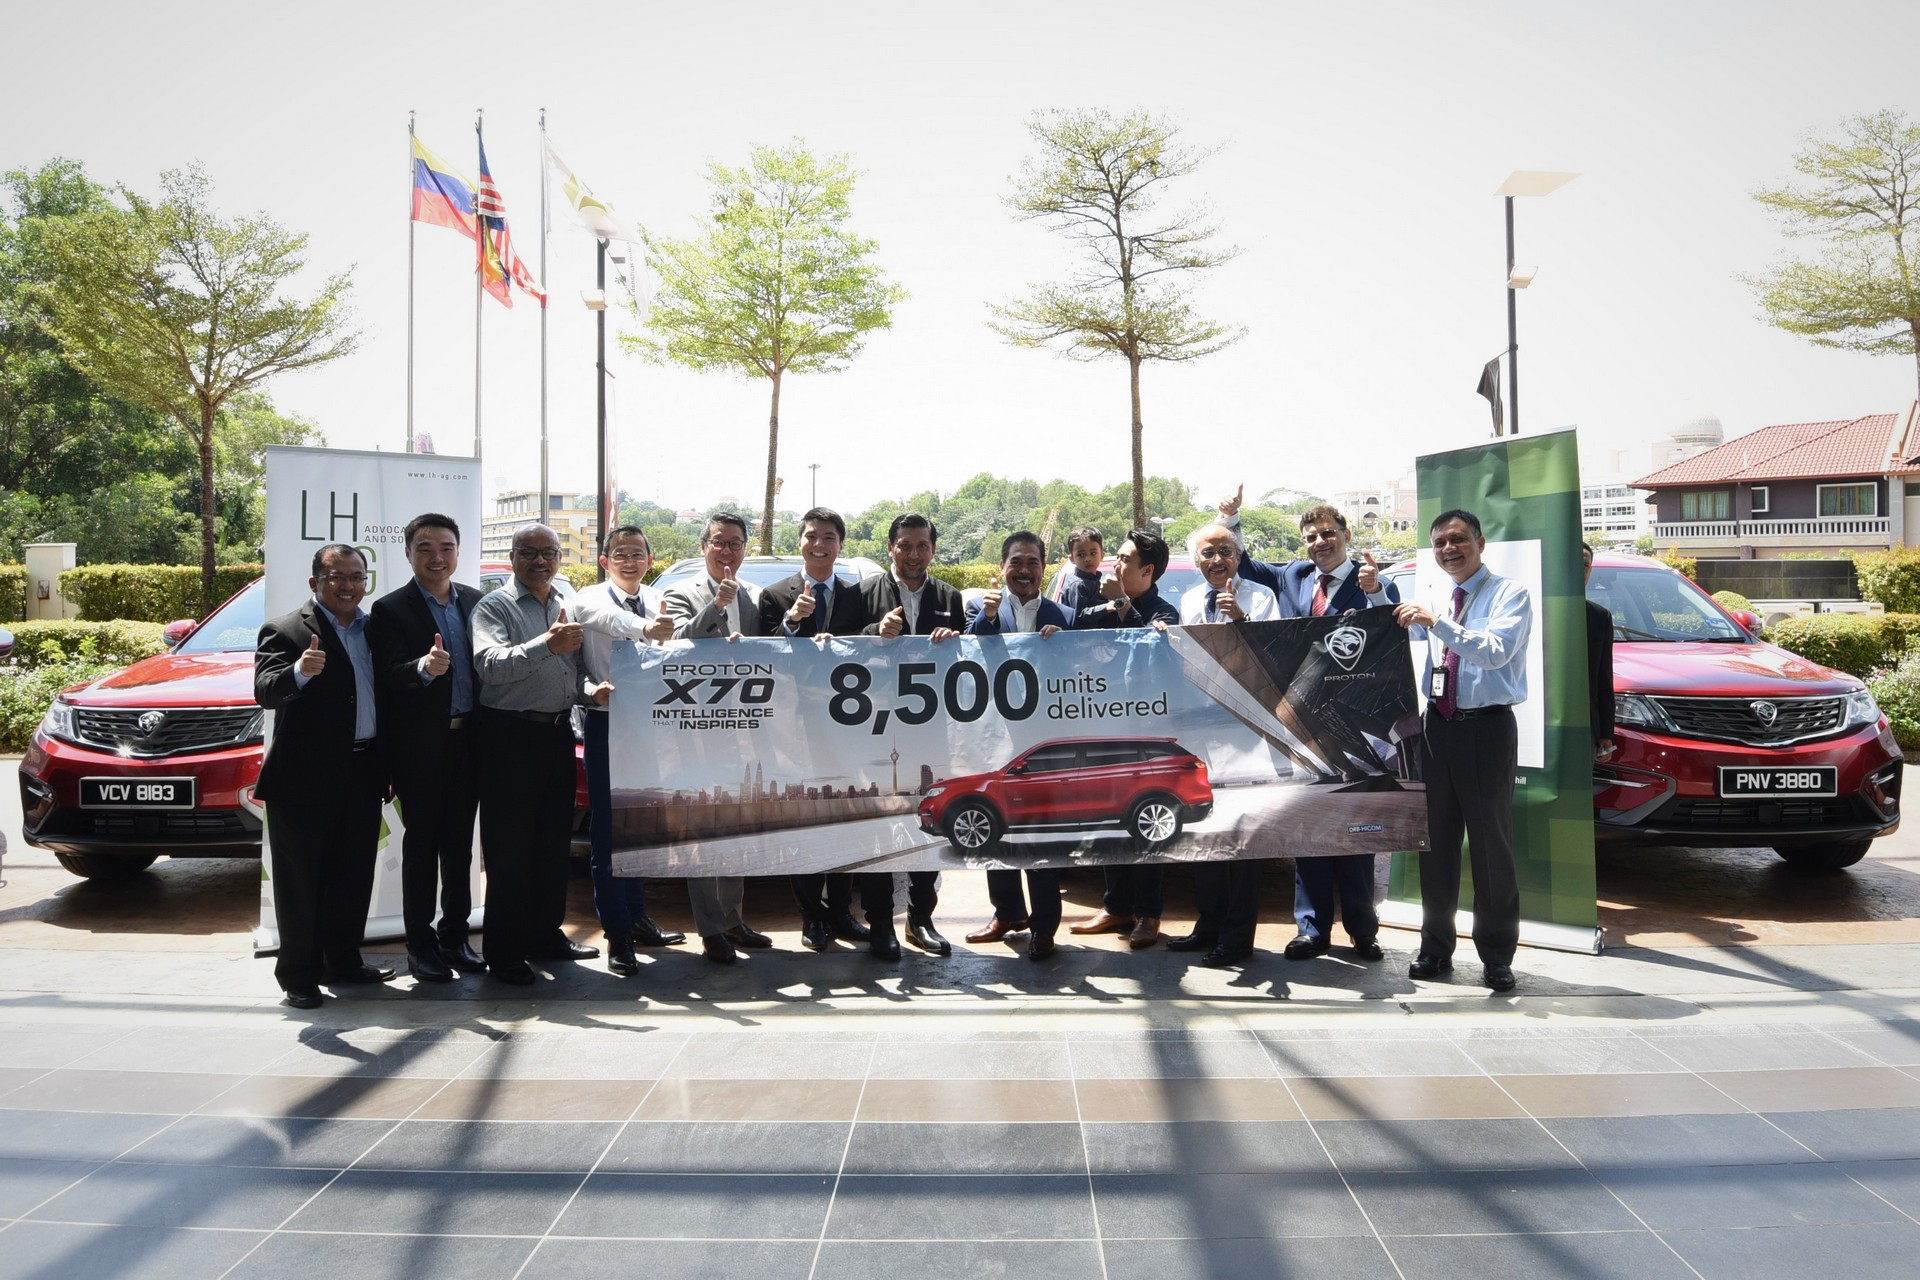 proton delivered 8 500 units of the x70 in the first 100 days